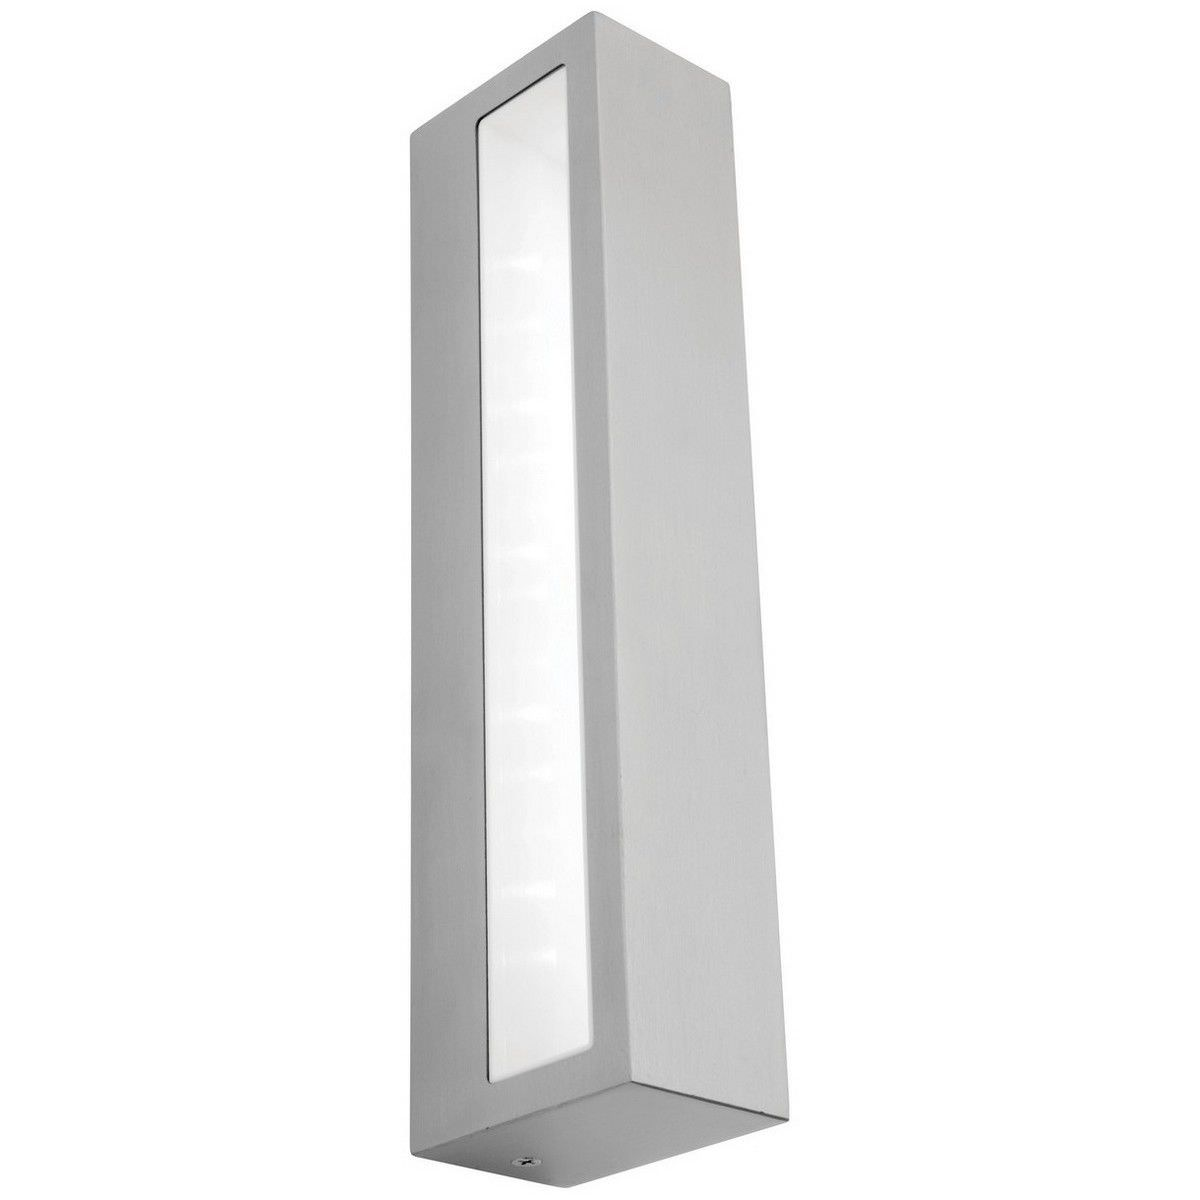 Somers IP54 LED Outdoor Wall Light, Large, Silver